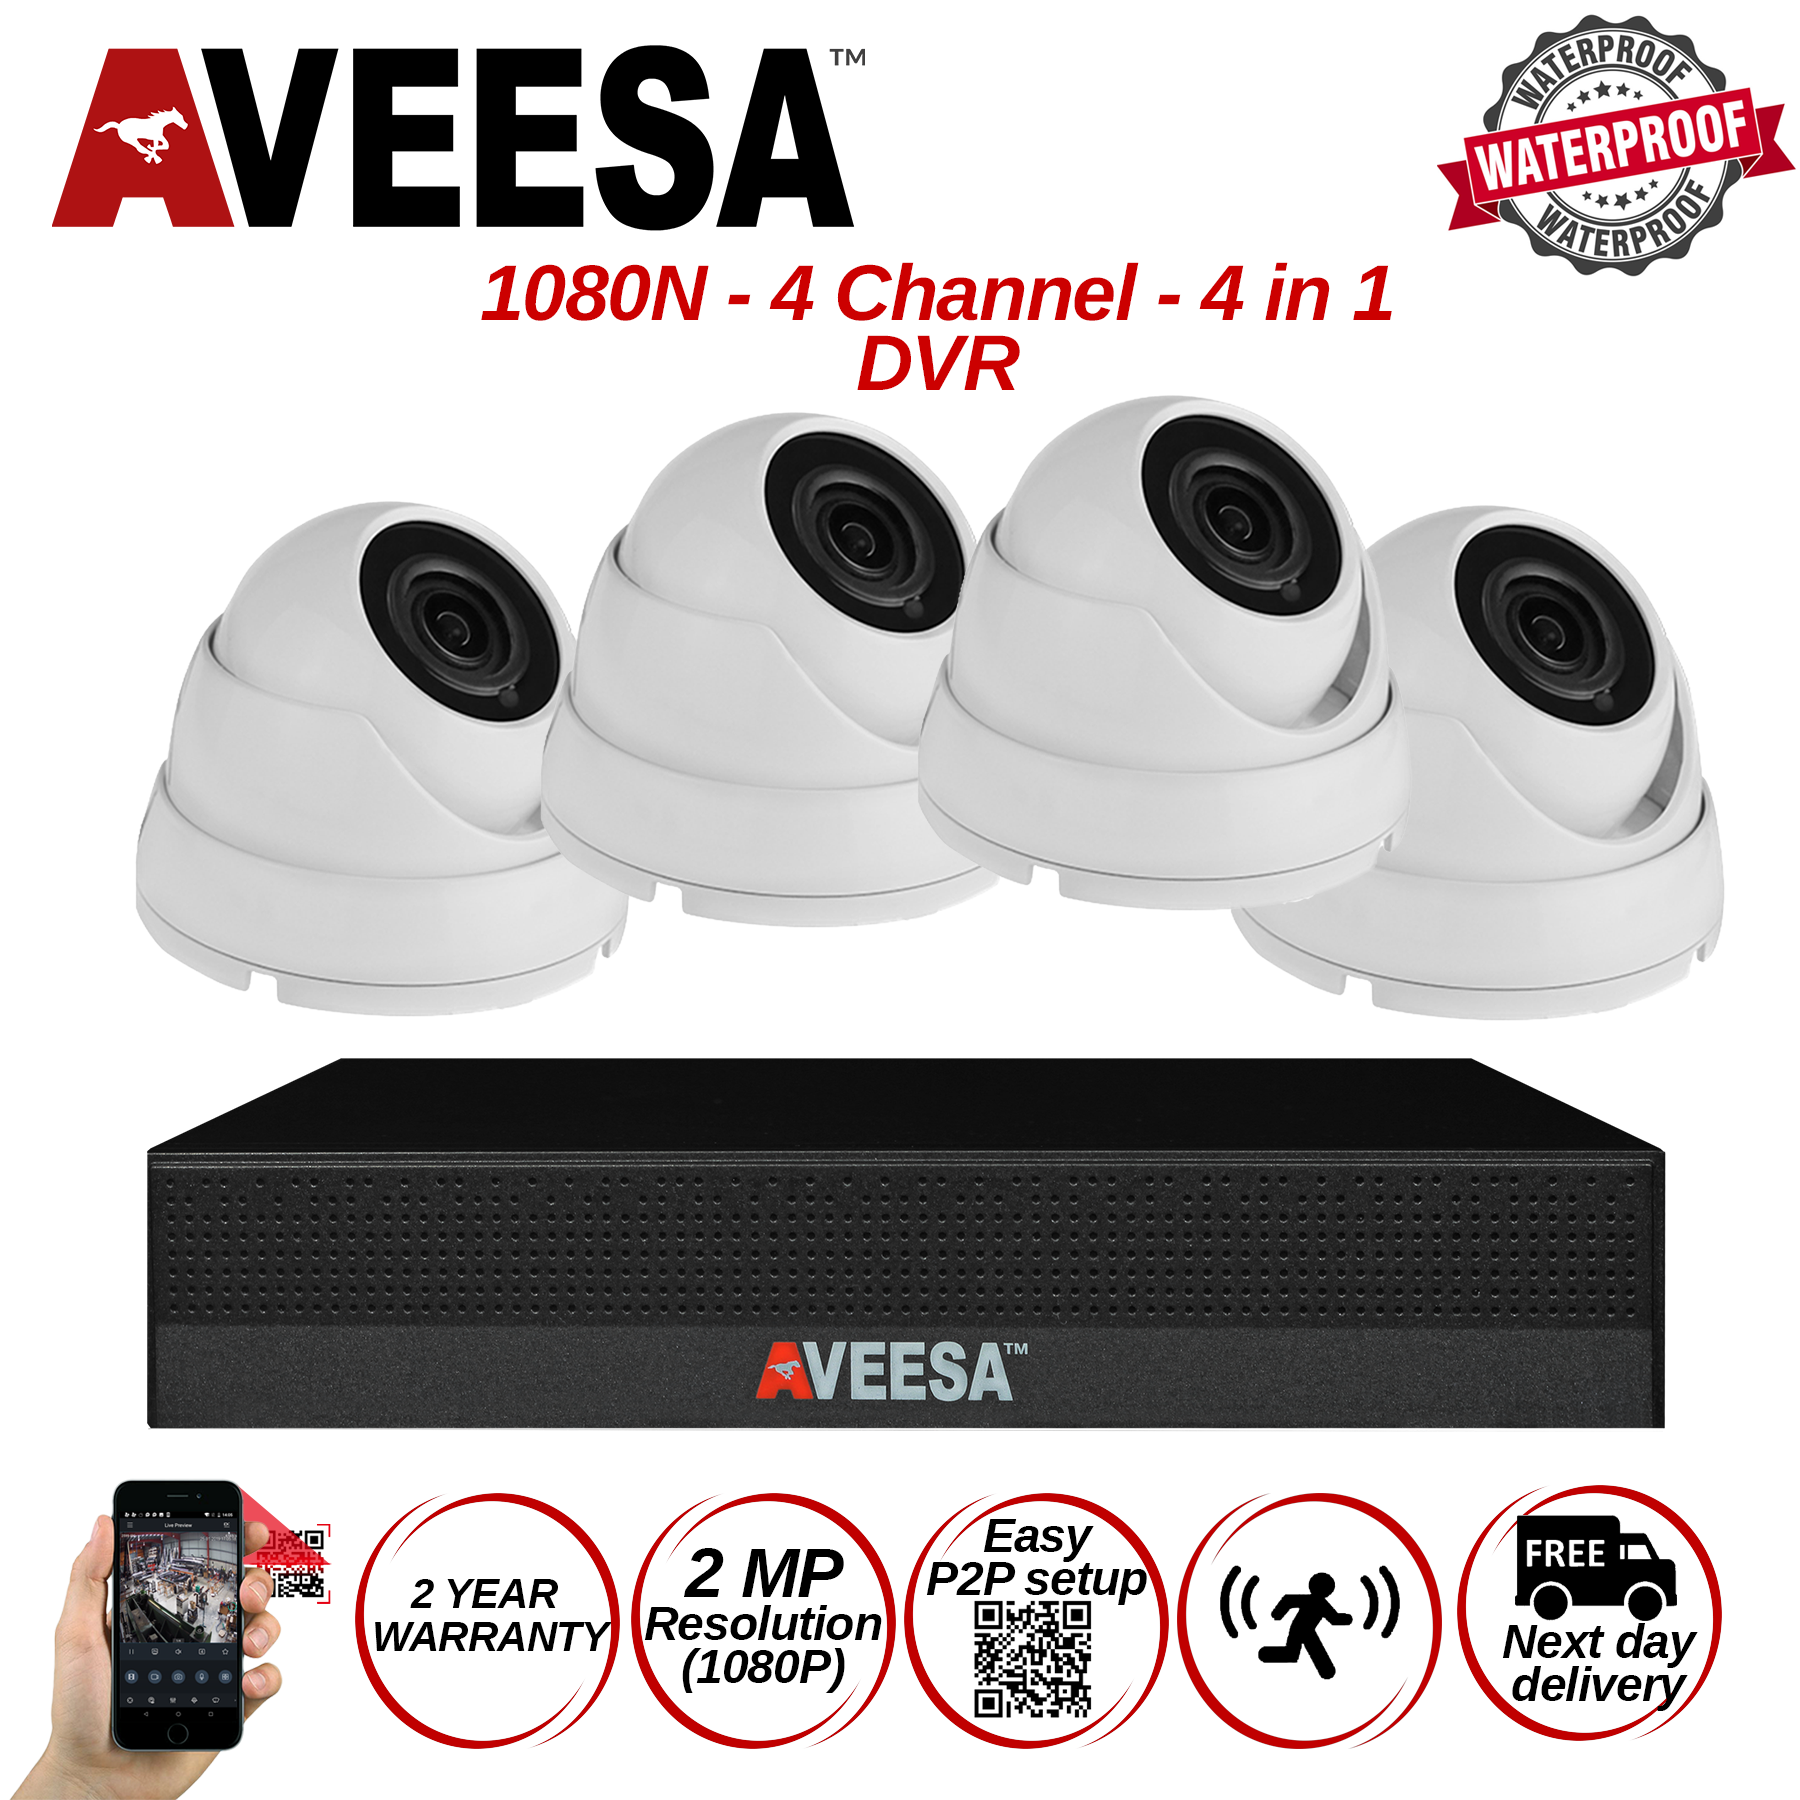 2MP Sony CCTV Camera Home Security System kit Aveesa 4 channel 1080N 4 IN 1 DVR